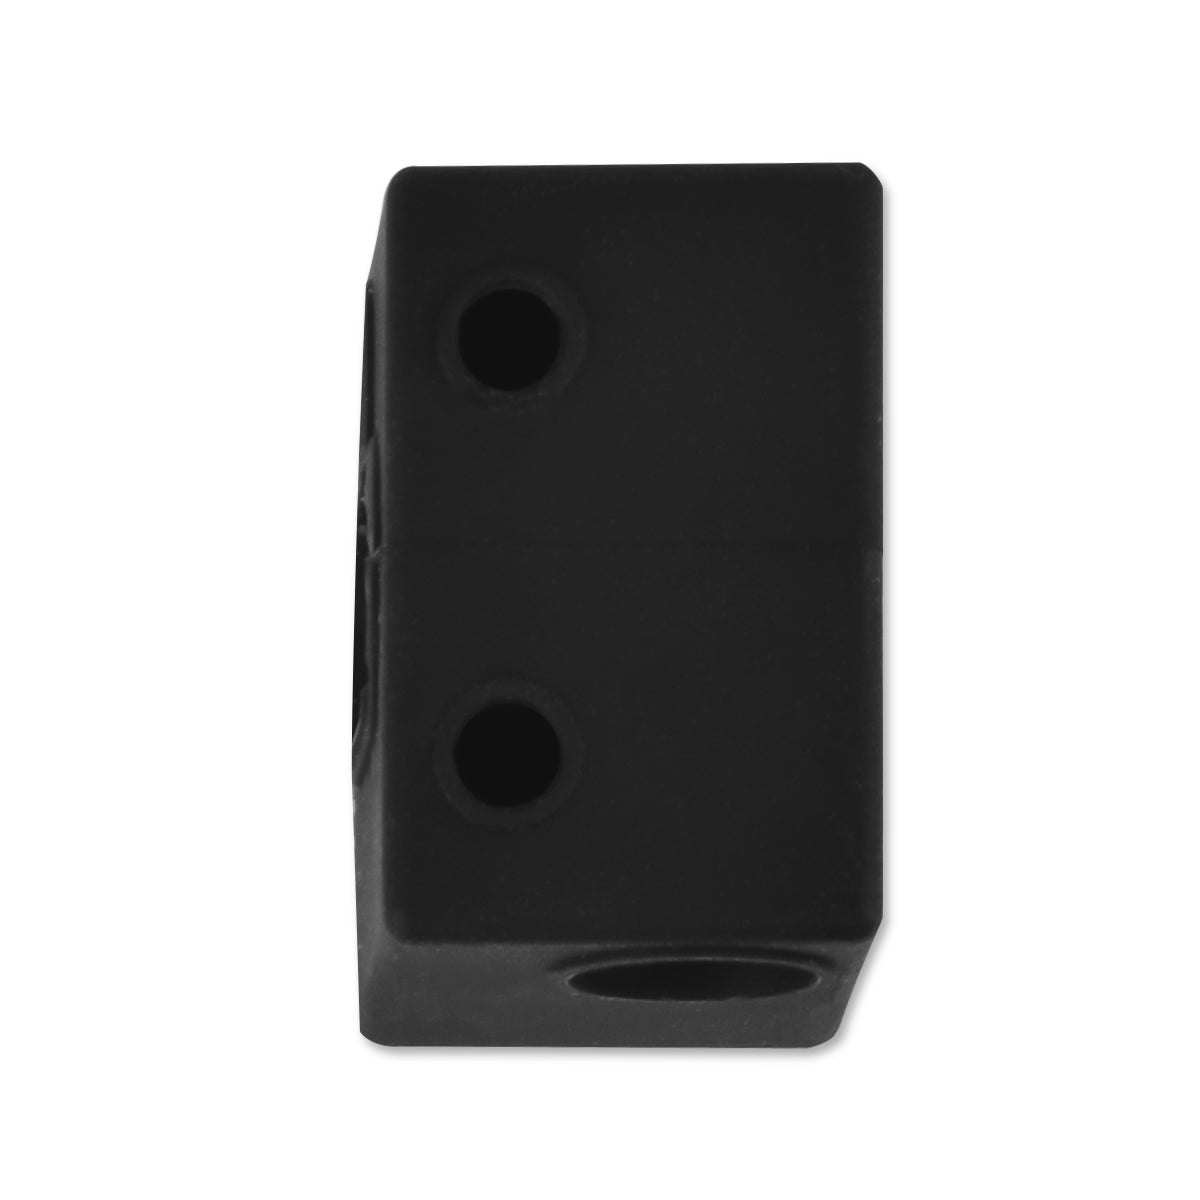 HEAT BLOCK SILICONE COVER